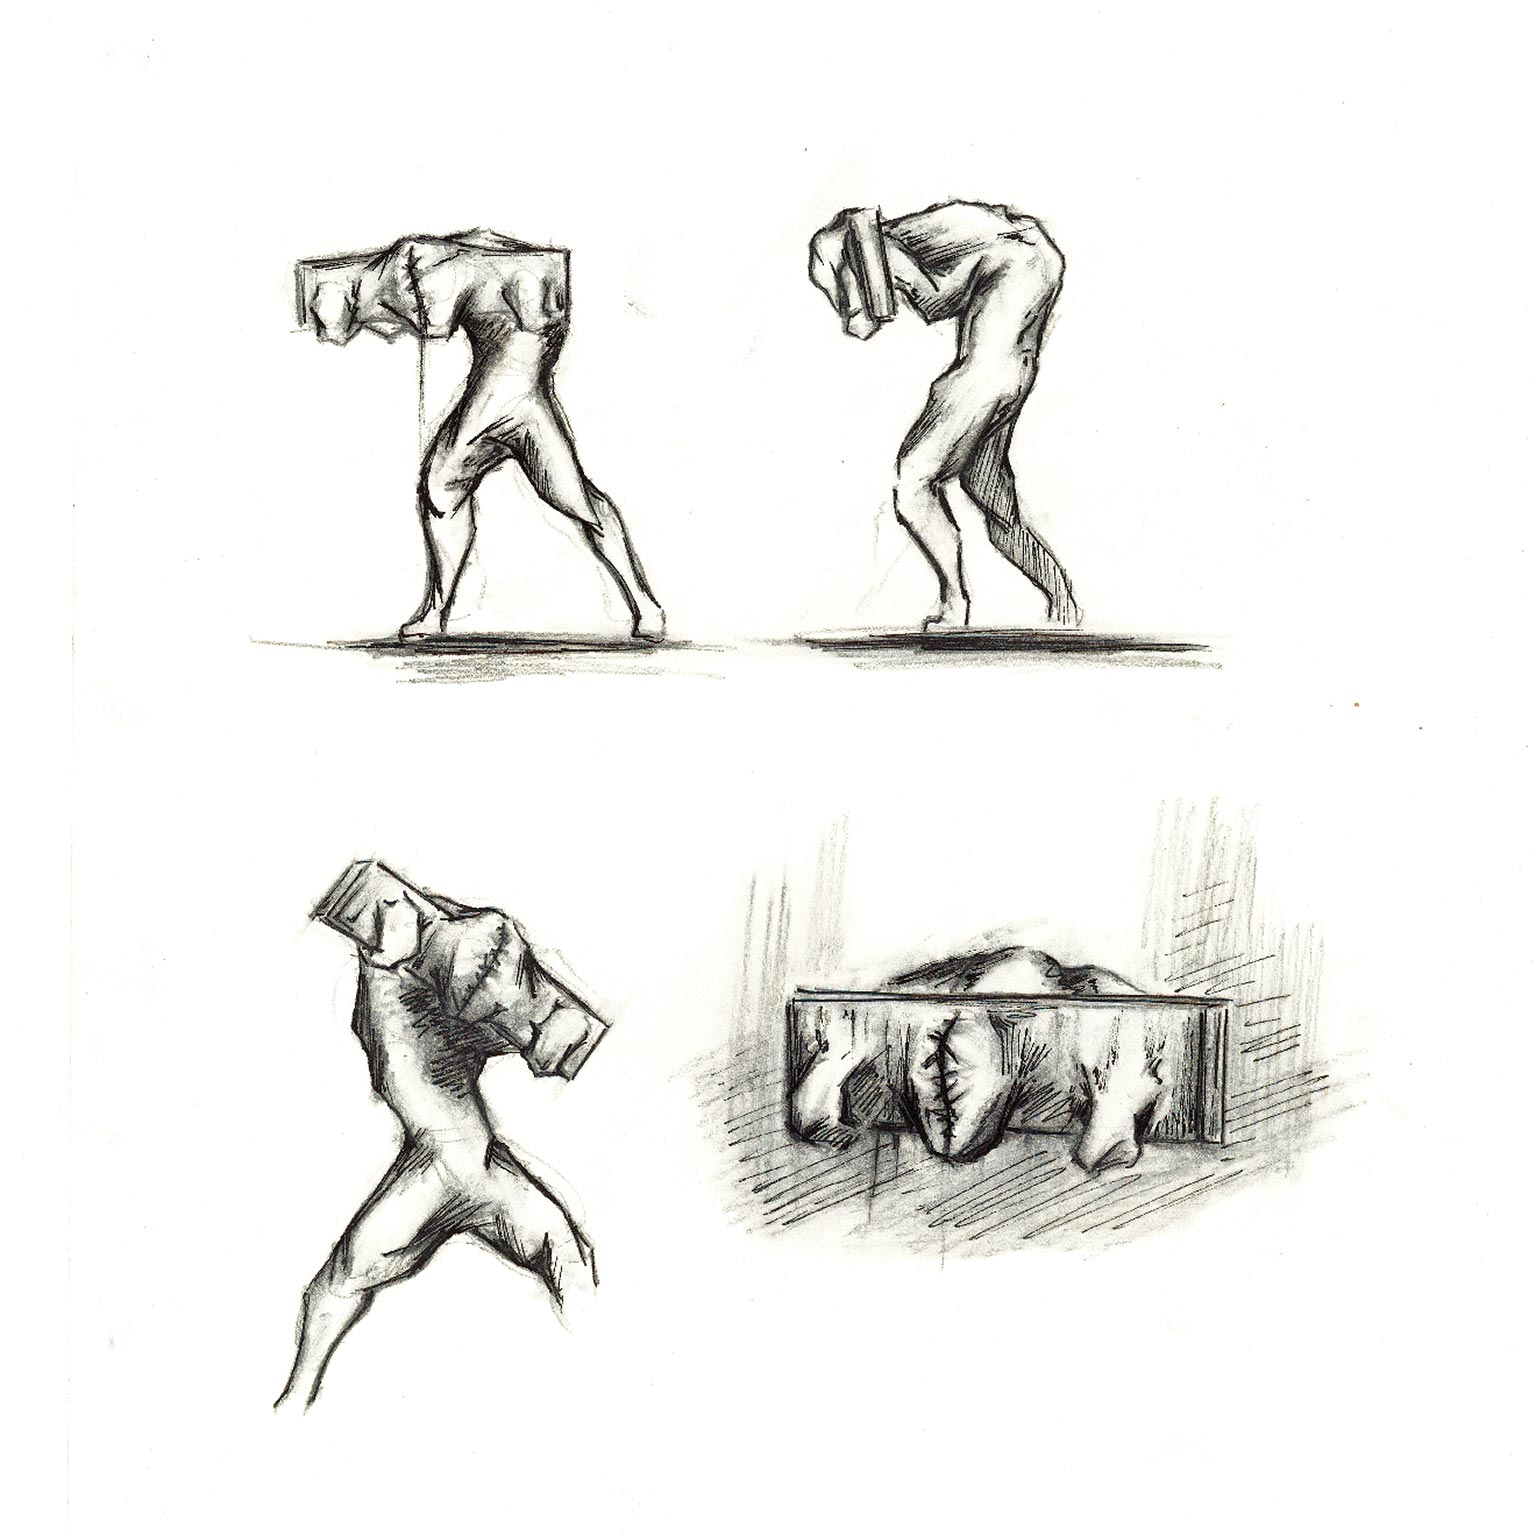 sketch of man with neck and arms bound to plank